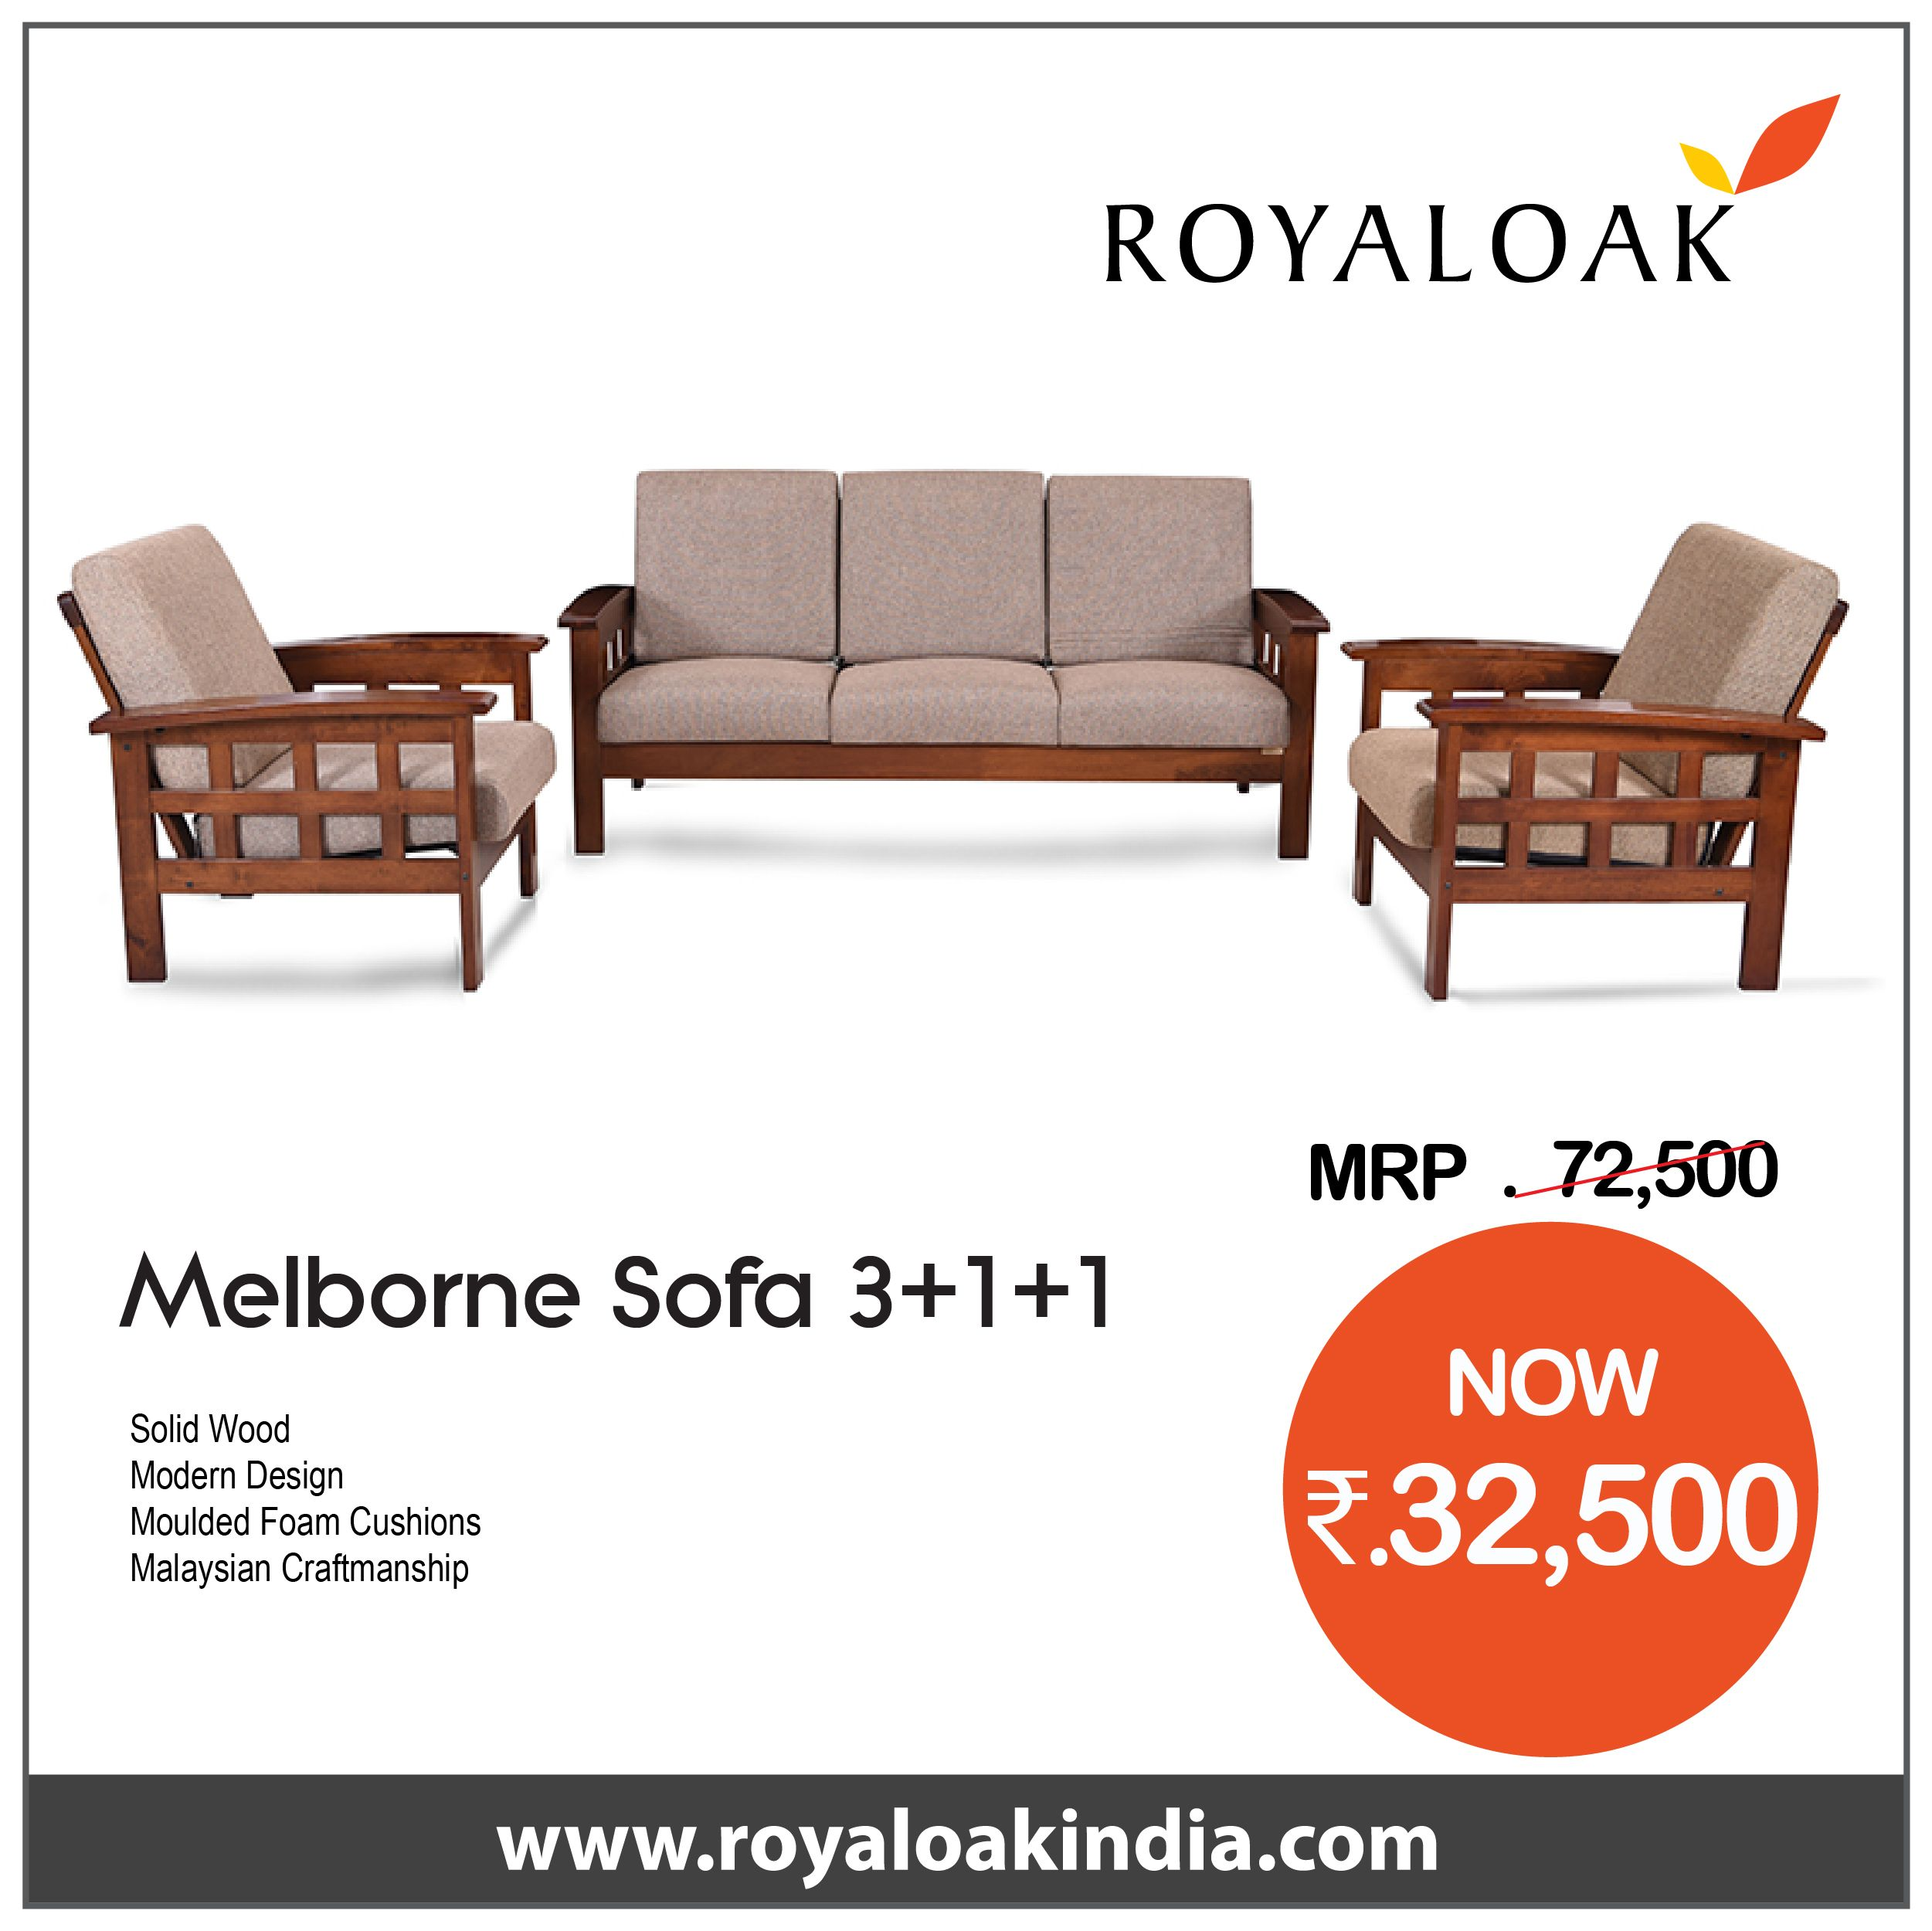 Buy Royaloak Melborne 3 1 1 Solidwood Sofa Set Brown By Royaloak At The Lowest Price In India Buy Sofa Sets Sofas Living From Royaloak At The Lowest Price Wooden Sofa